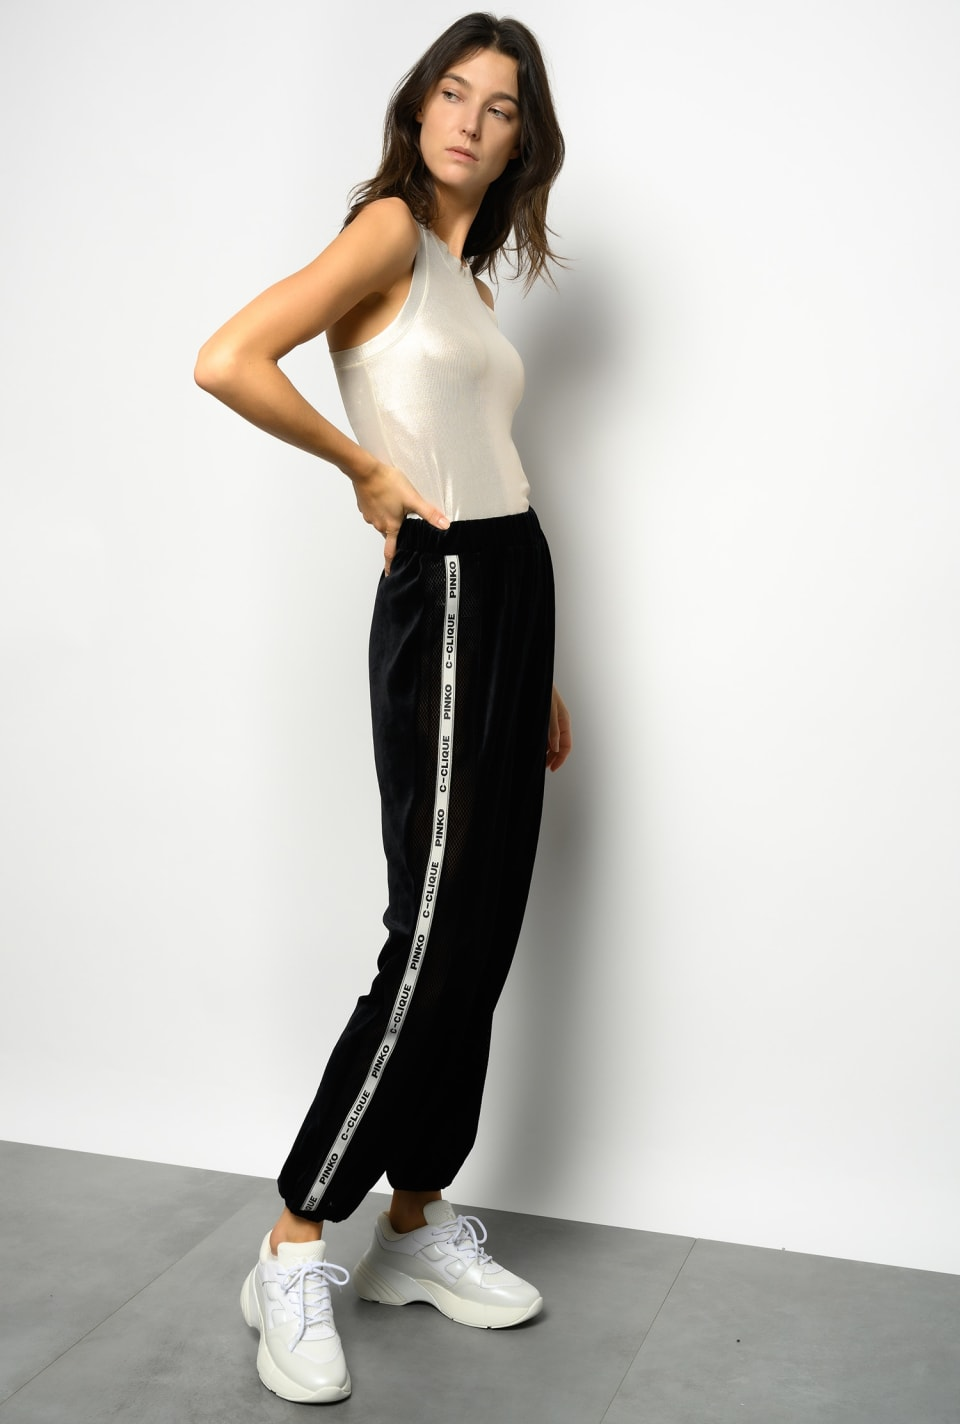 Chenille and mesh jogging bottoms - Pinko